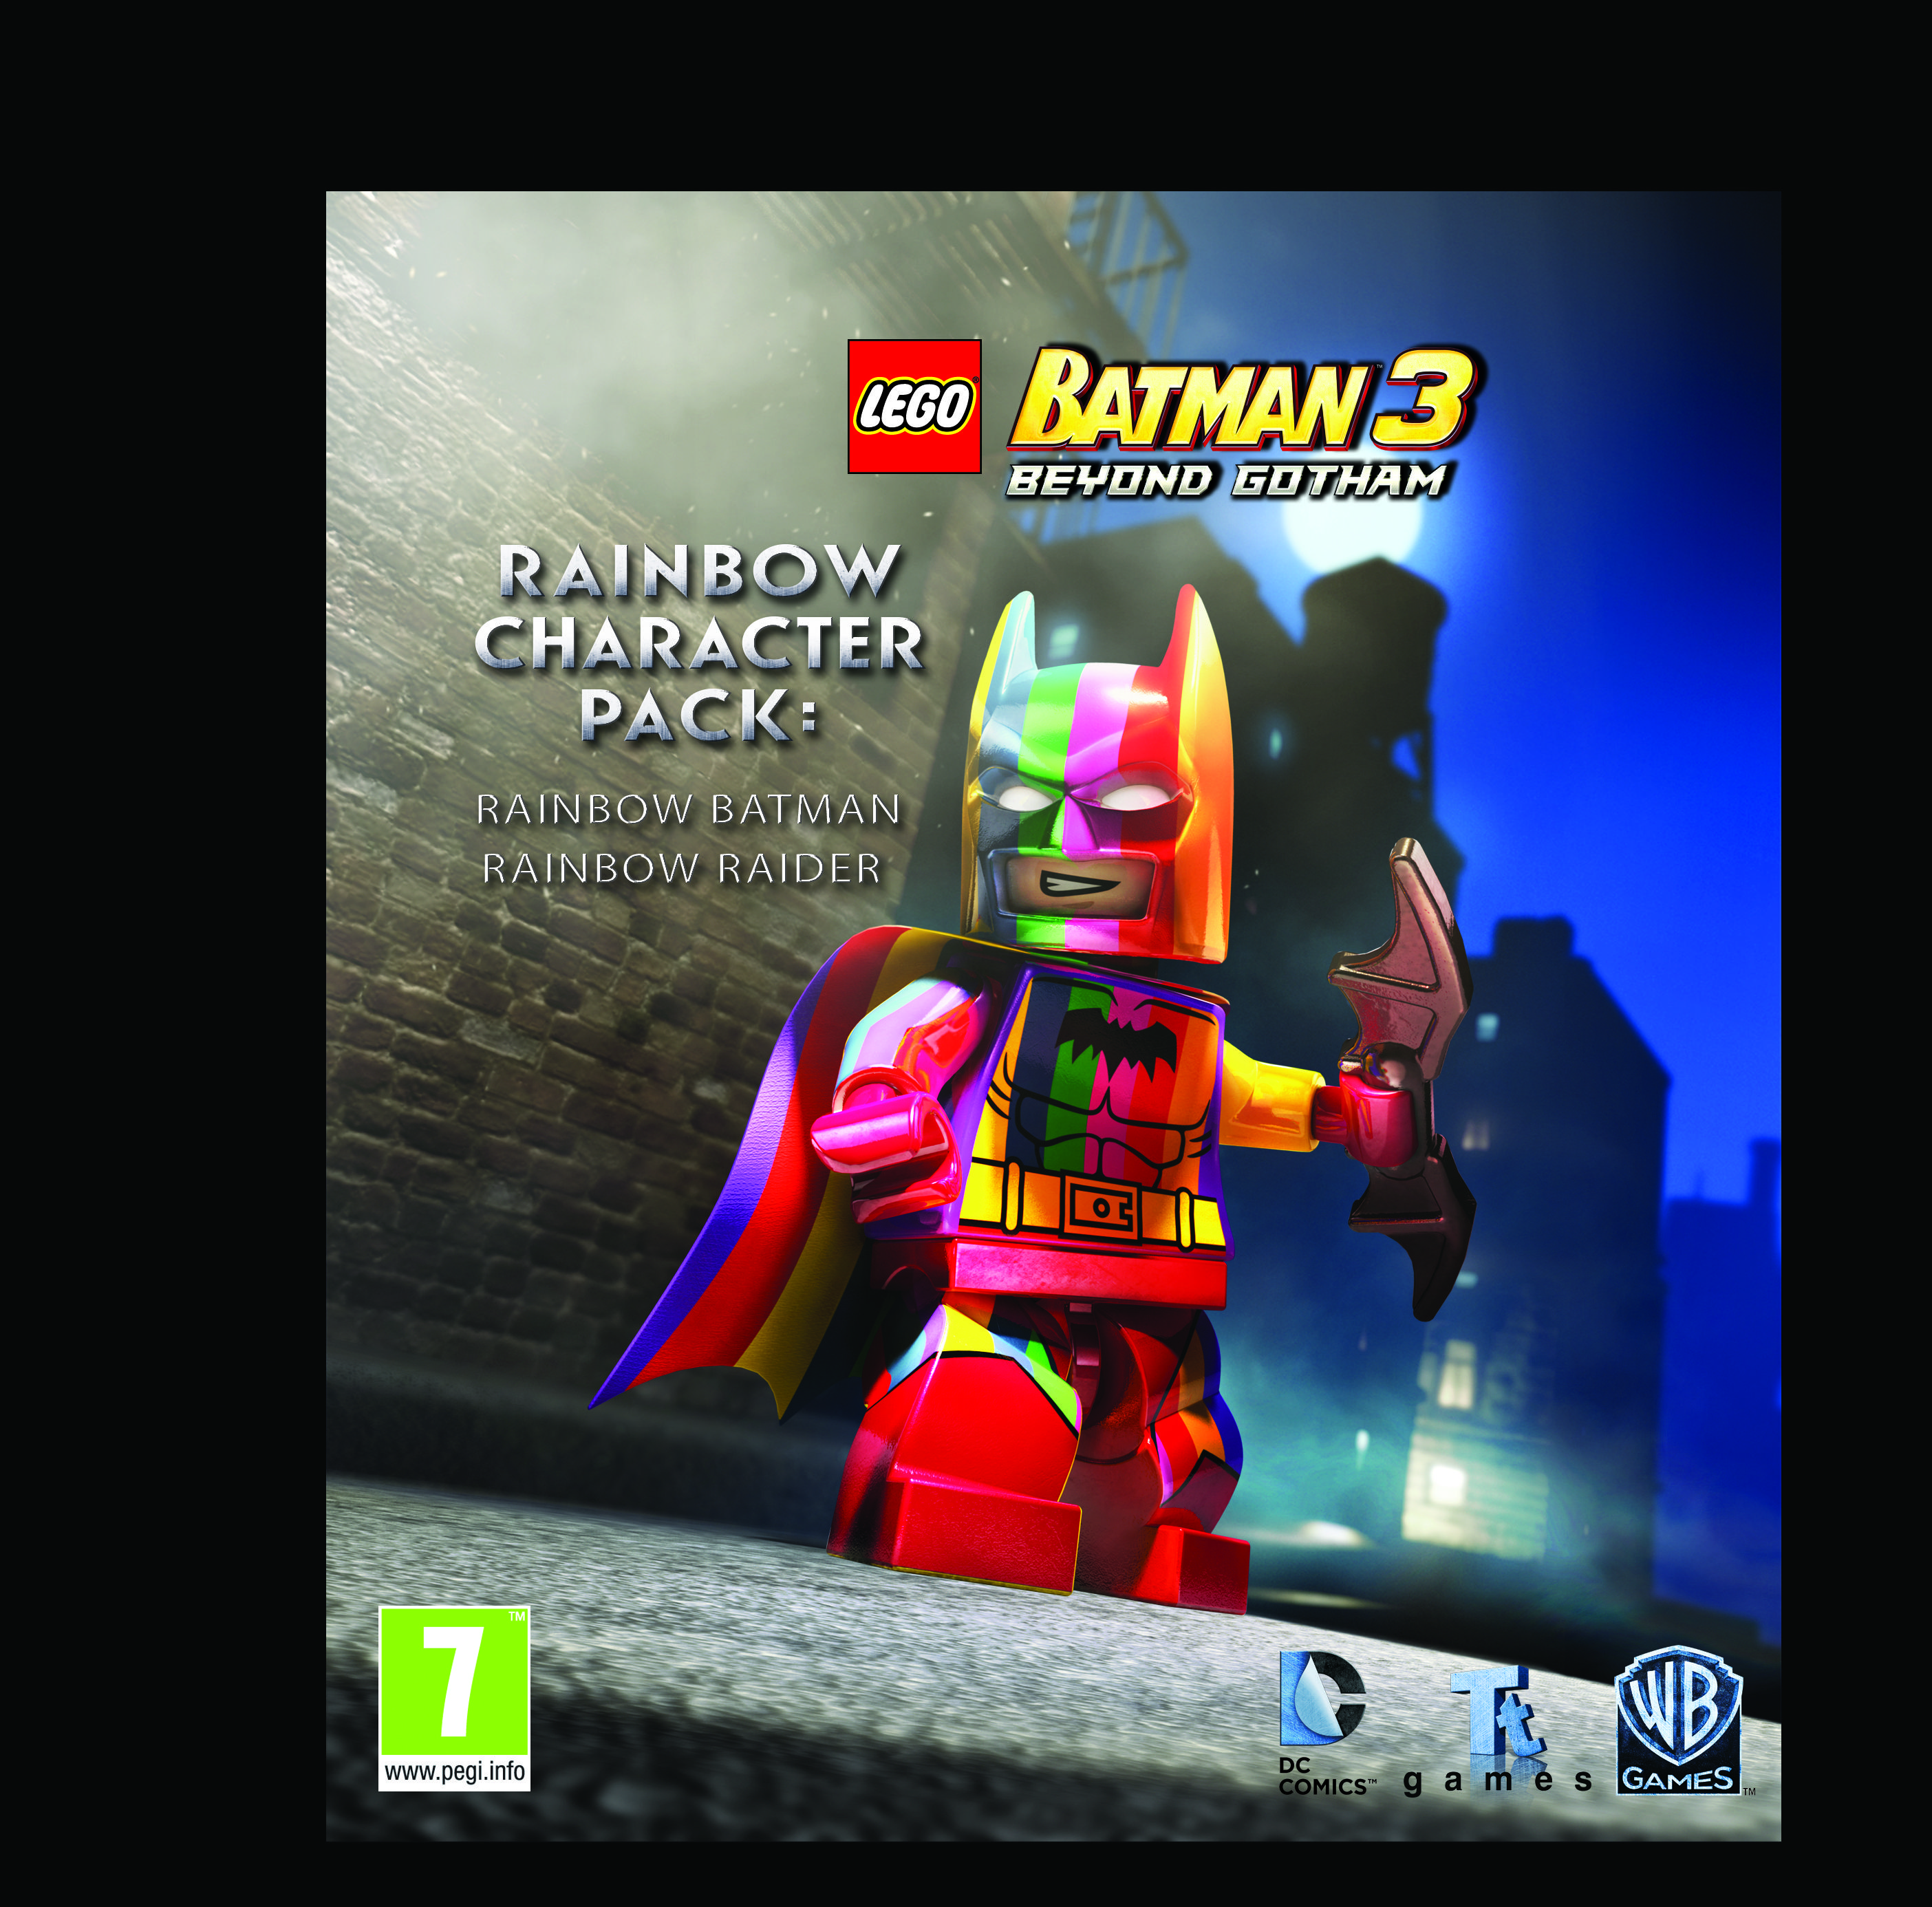 Lego Batman 3 Beyond Gotham Arrow Dlc Pack Available Tomorrow Rainbow Character Pack Detailed Lego Batman 3 Lego Batman Lego